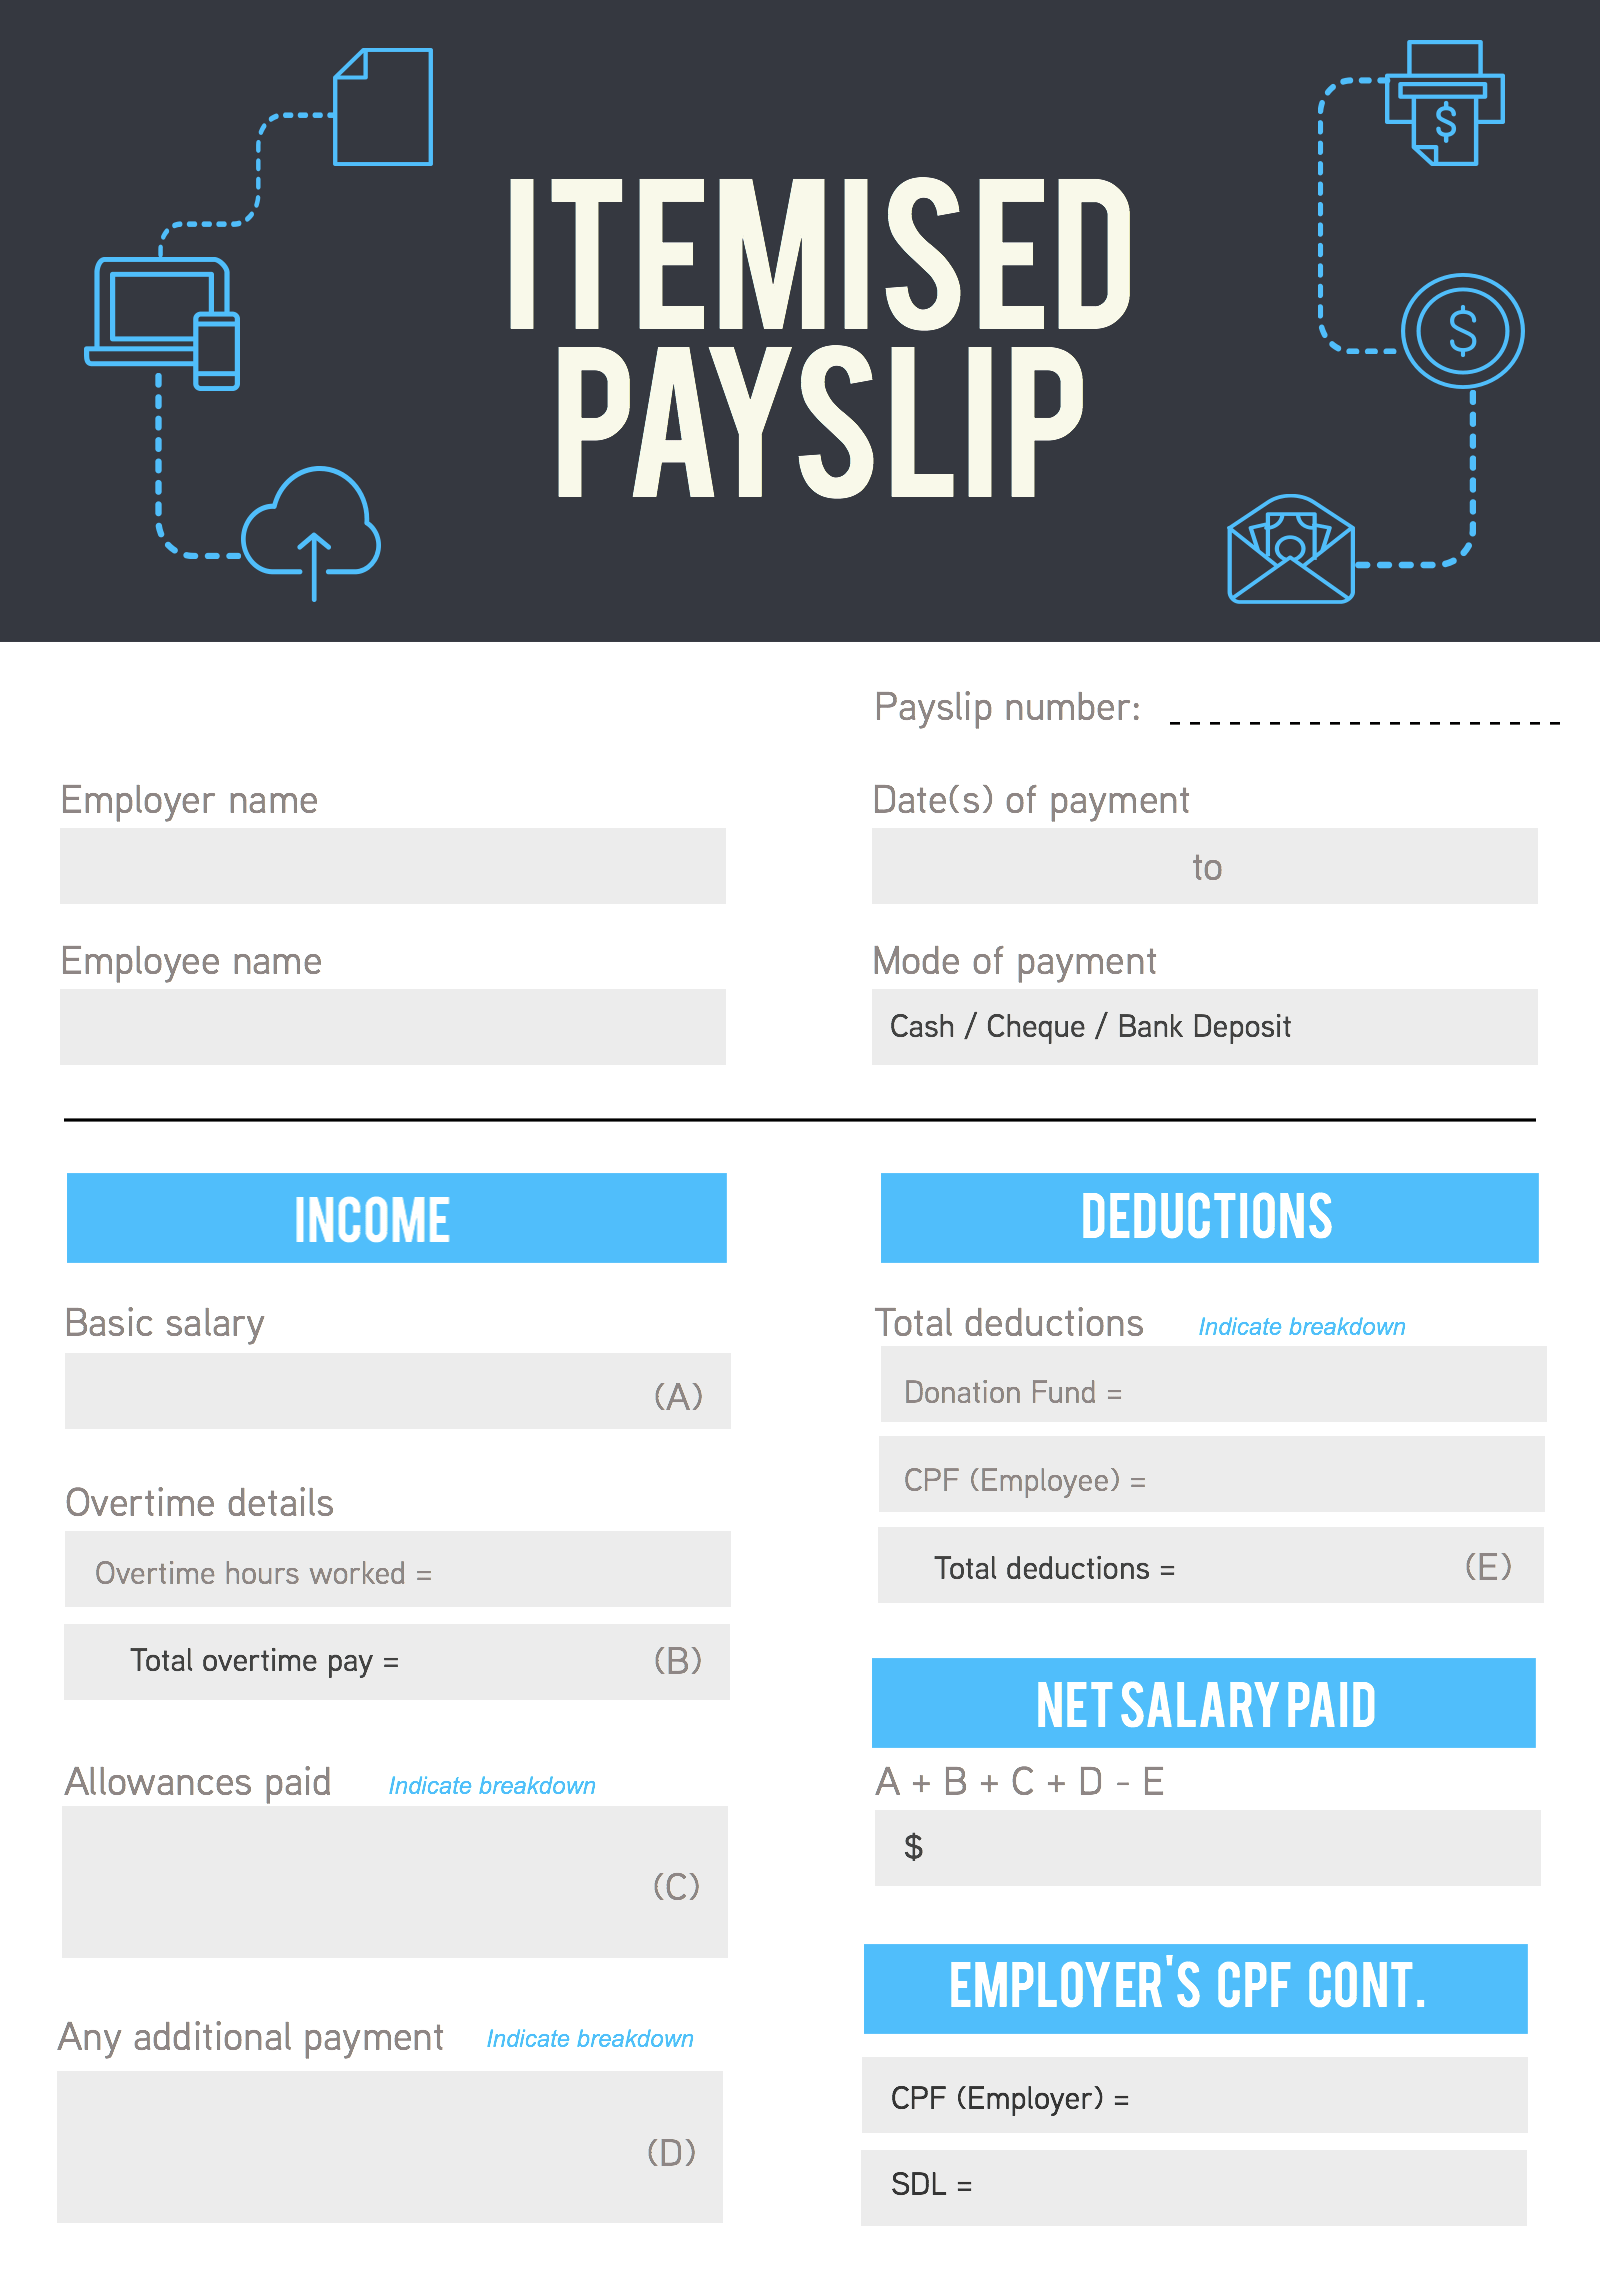 Itemised Payslips For Business Owners